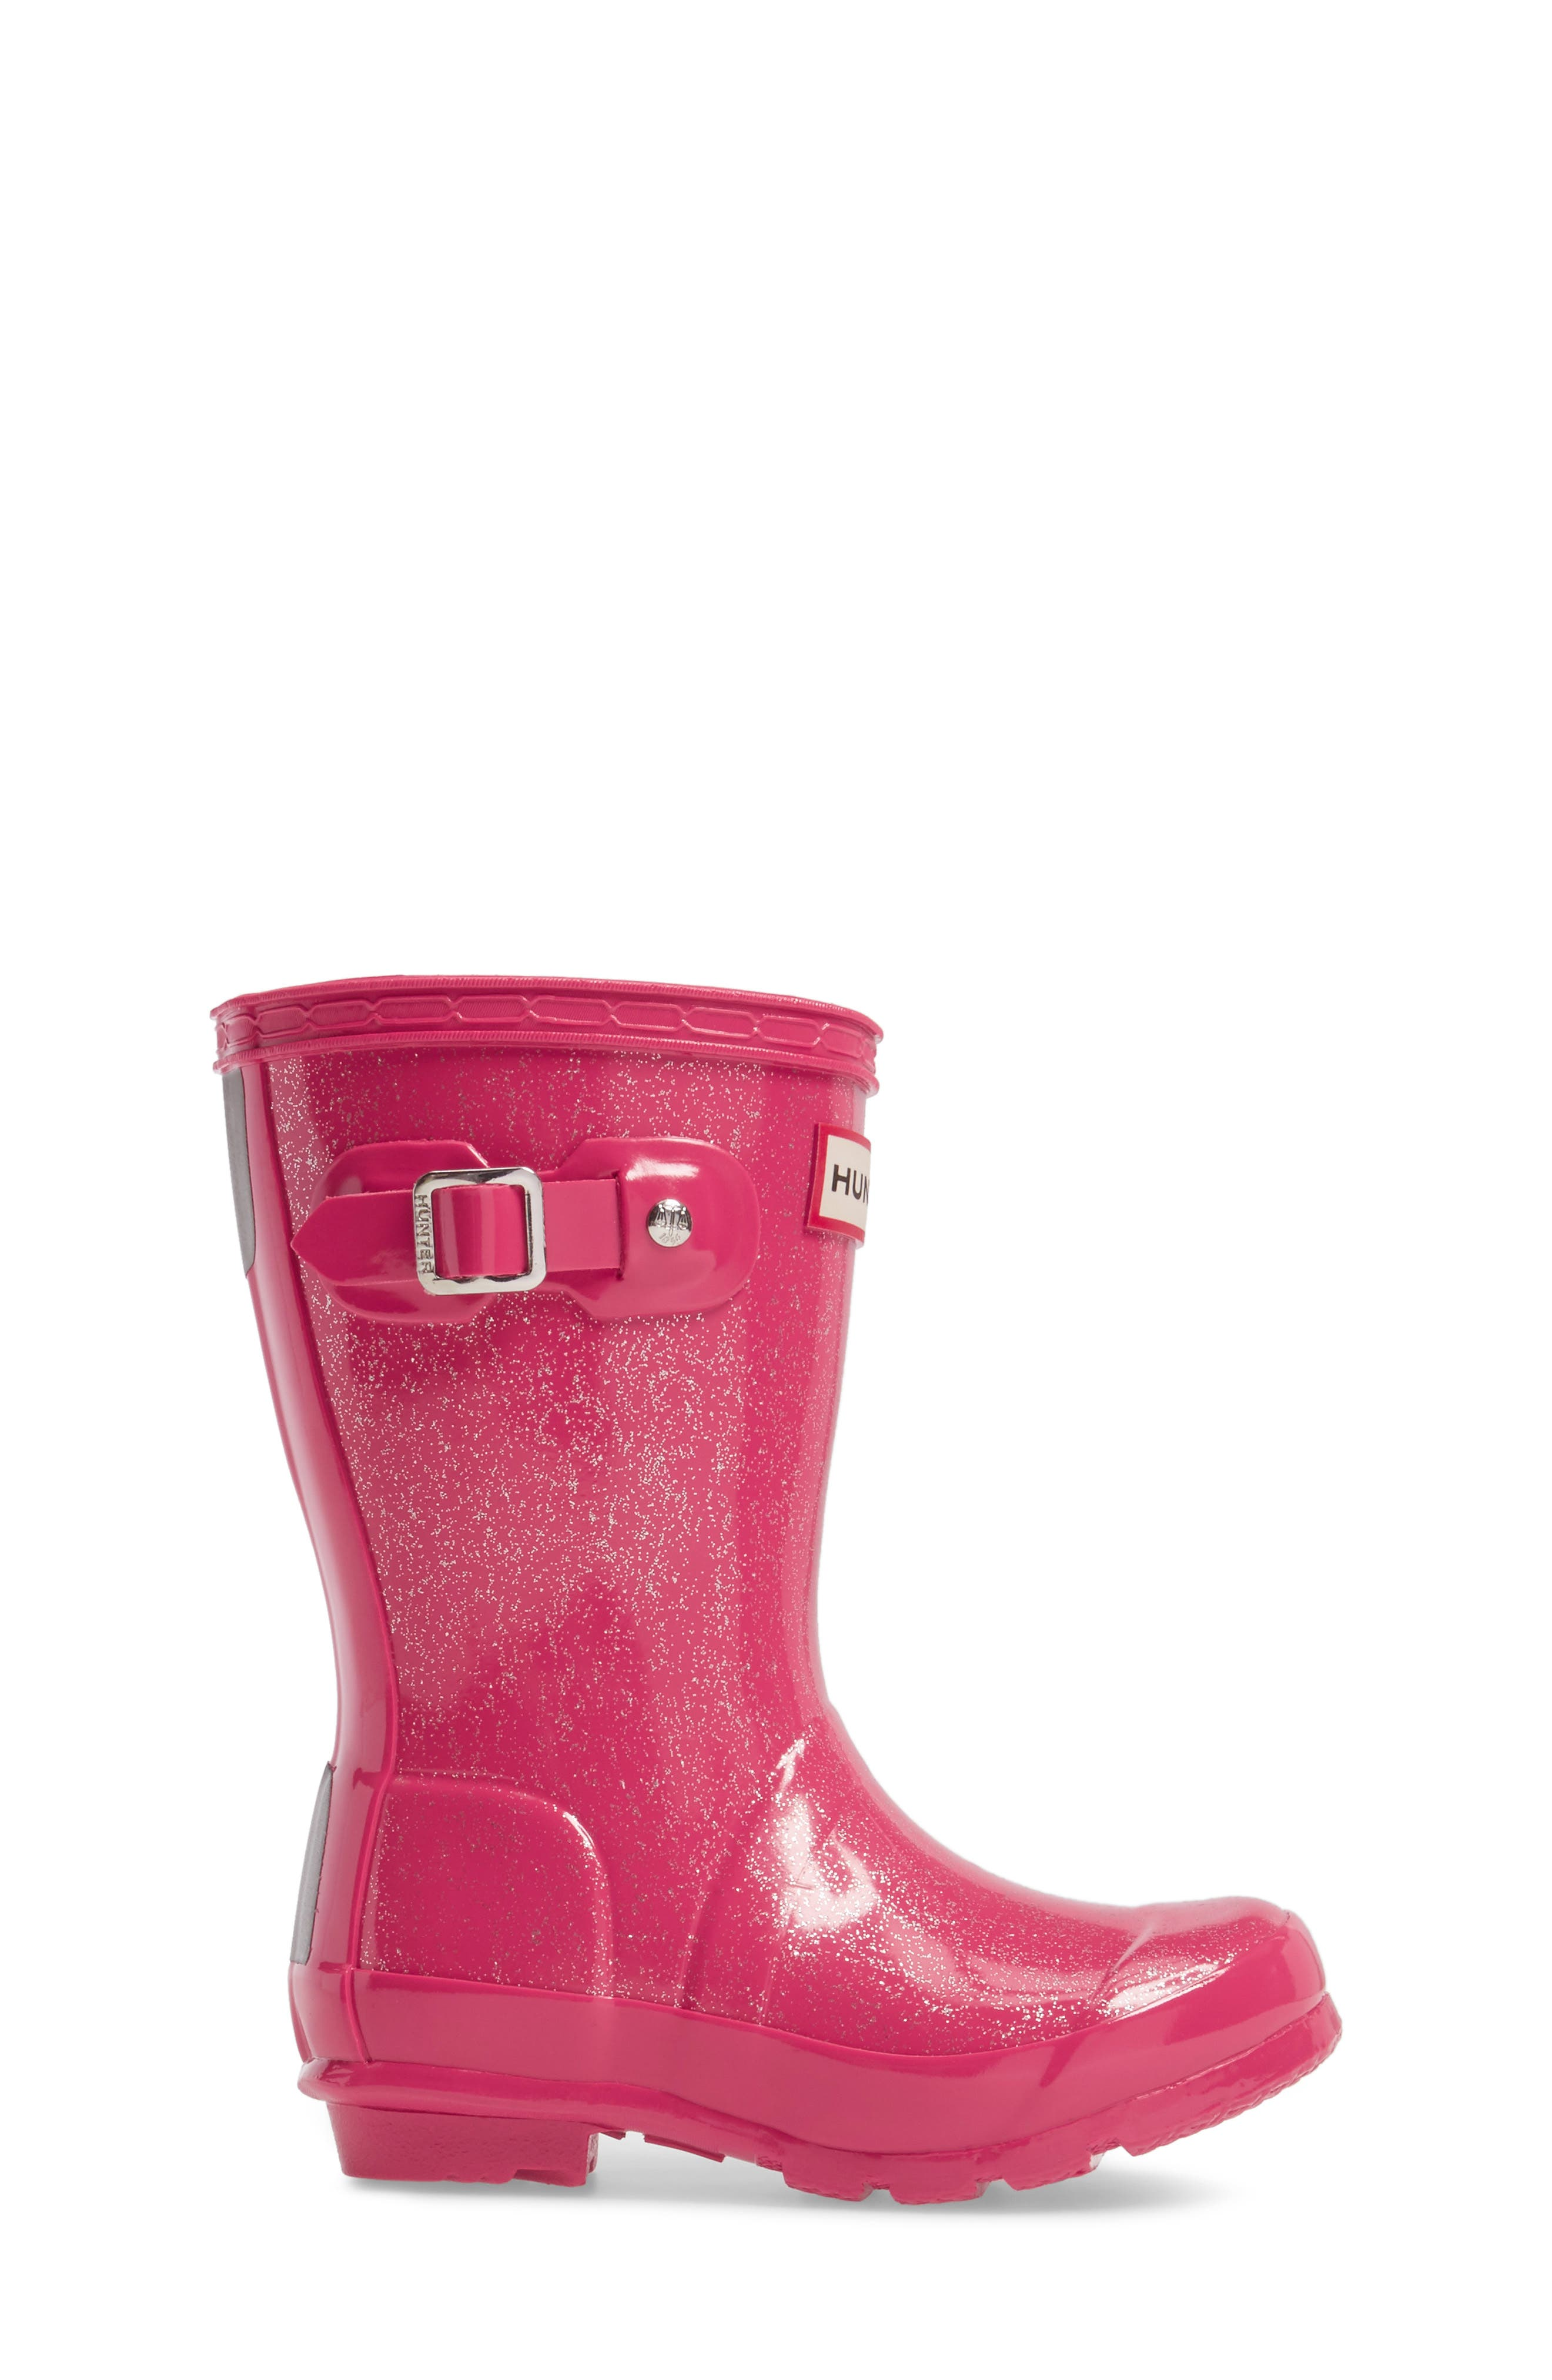 Alternate Image 3  - Hunter 'Original Glitter' Rain Boot (Toddler, Little Kid & Big Kid)